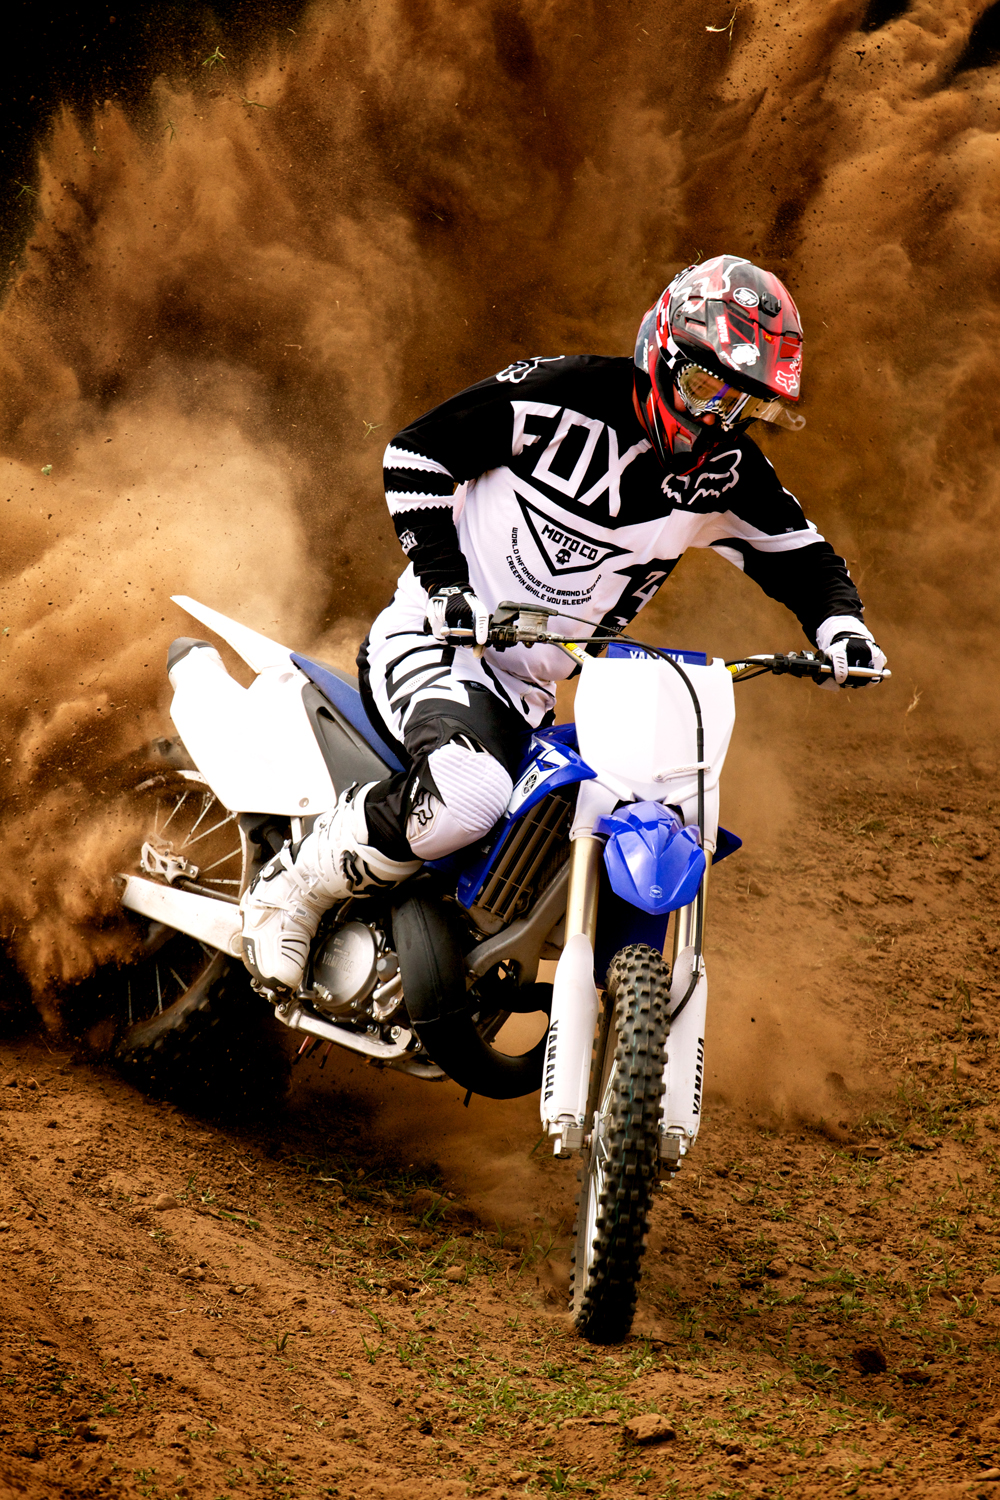 2013 Two Stroke MX Bike Feature